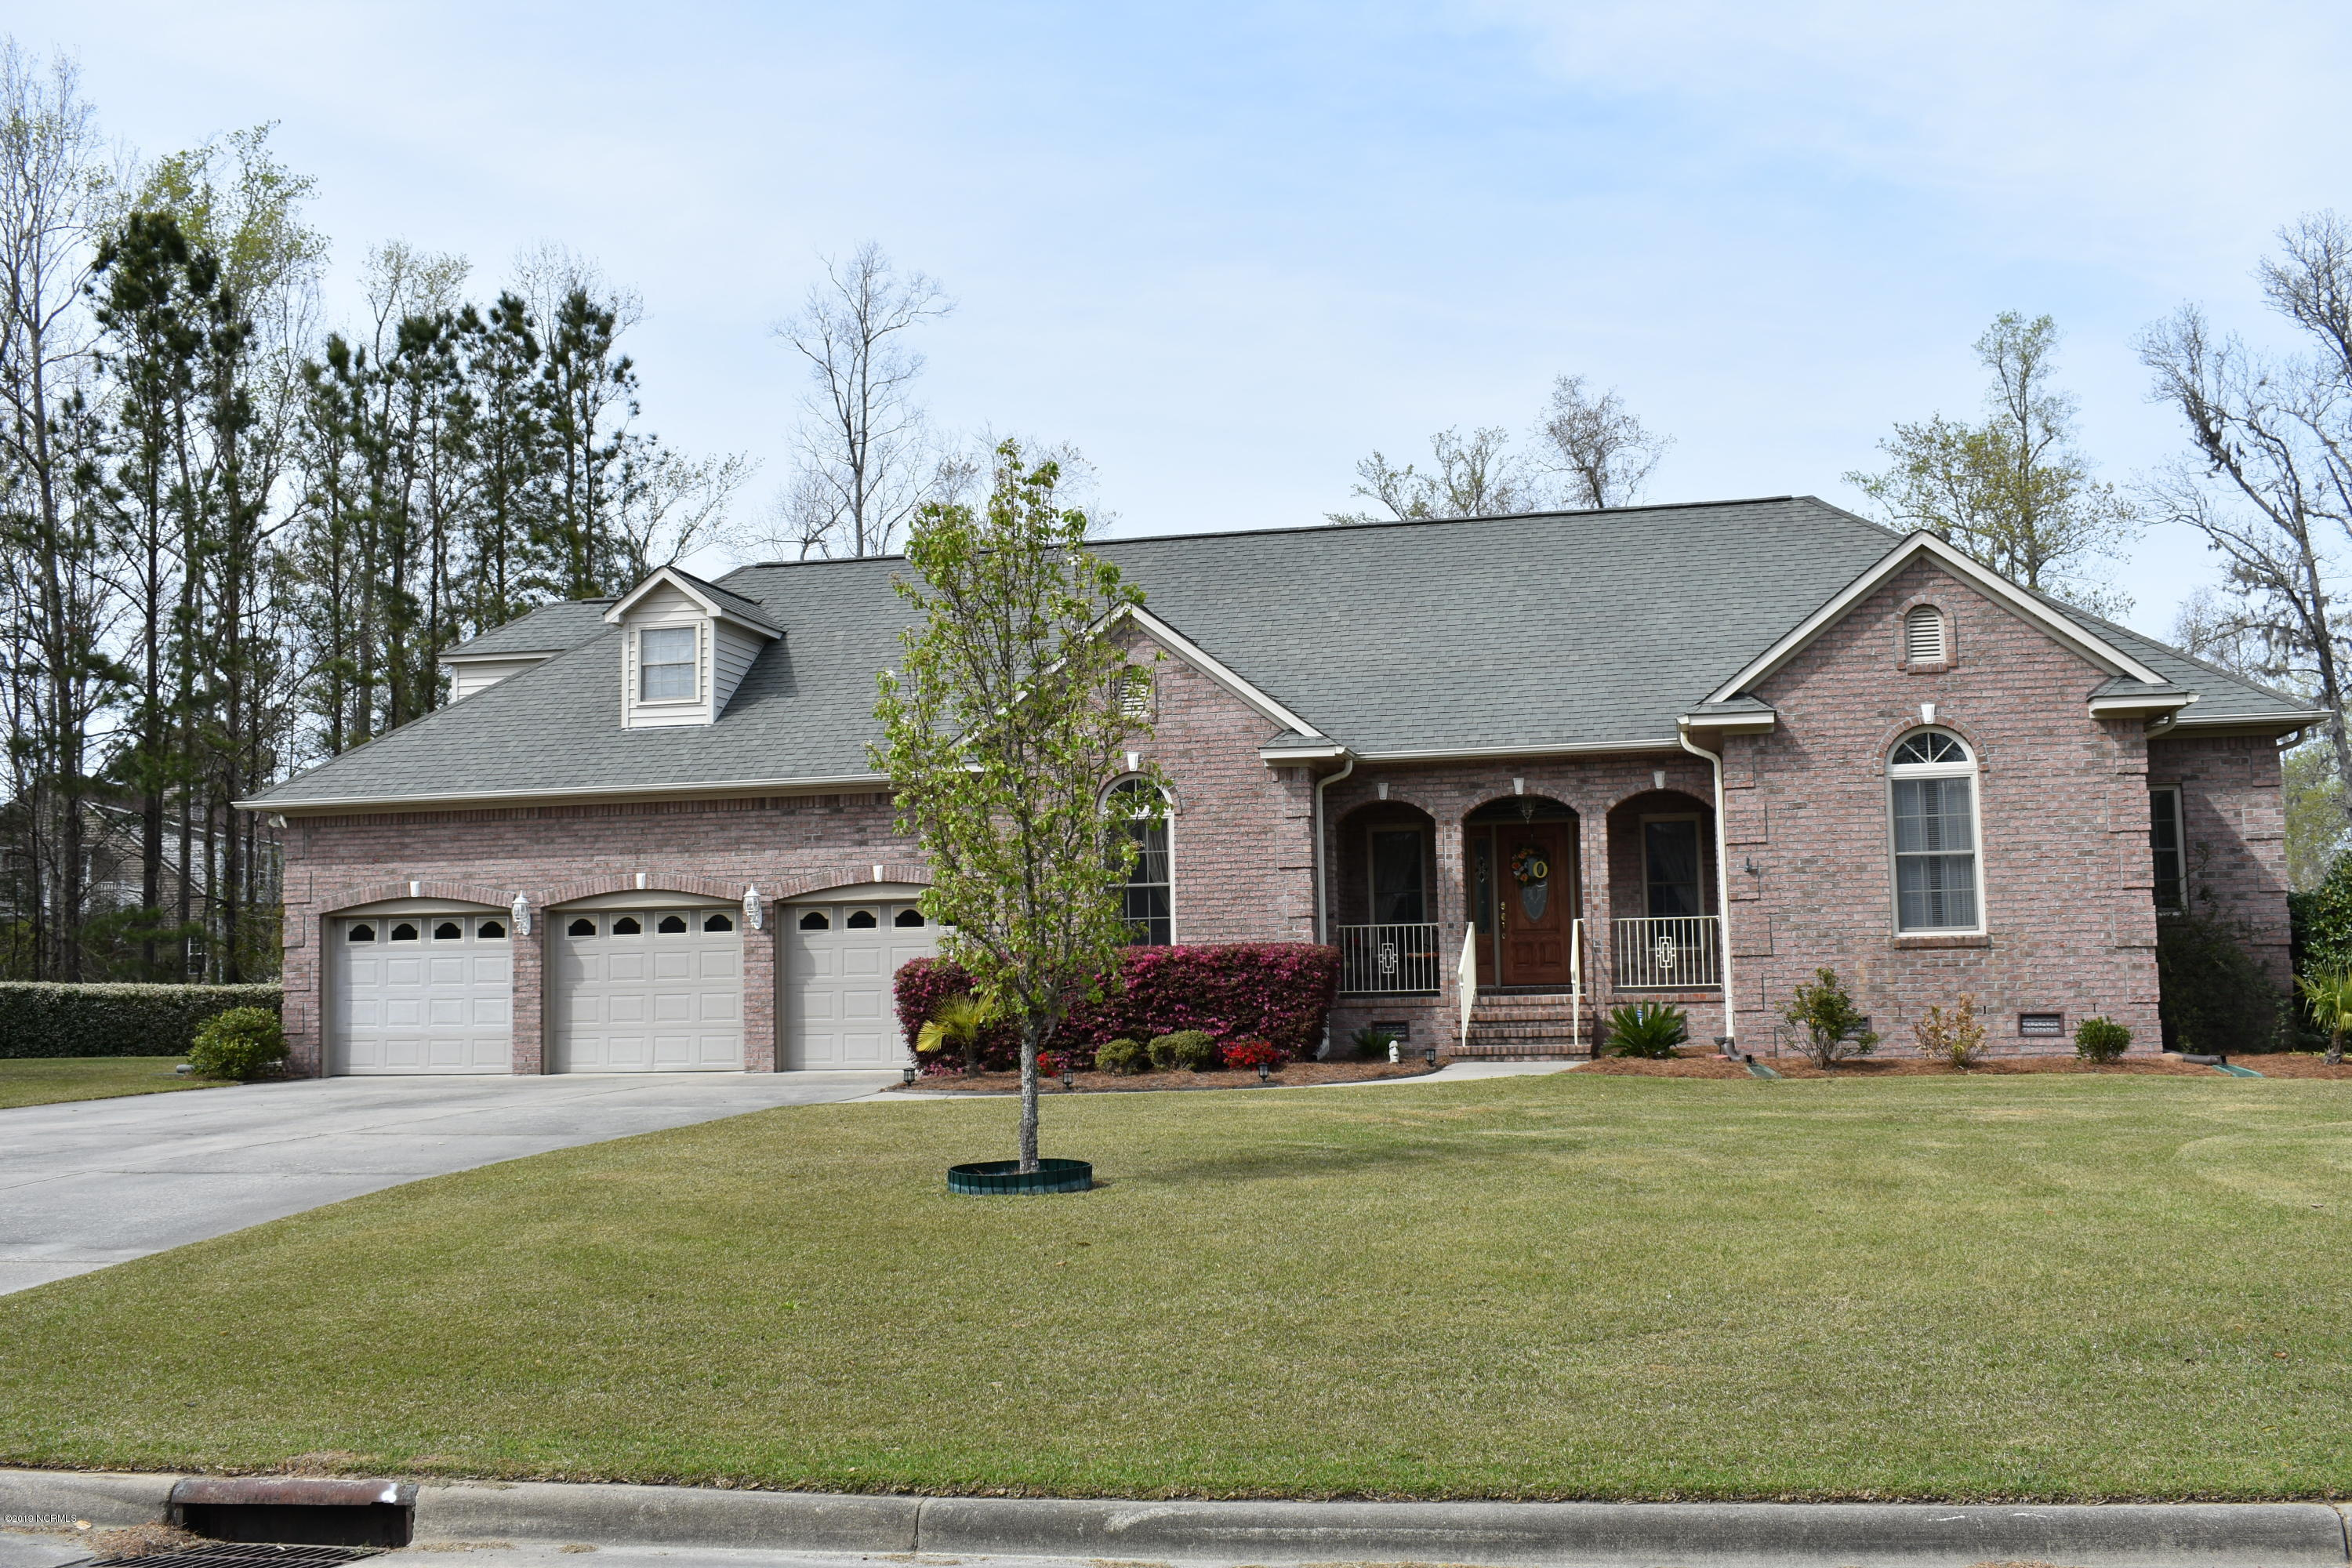 303 Neuse Harbour Boulevard, New Bern, North Carolina, 4 Bedrooms Bedrooms, 9 Rooms Rooms,4 BathroomsBathrooms,Single family residence,For sale,Neuse Harbour,100158140